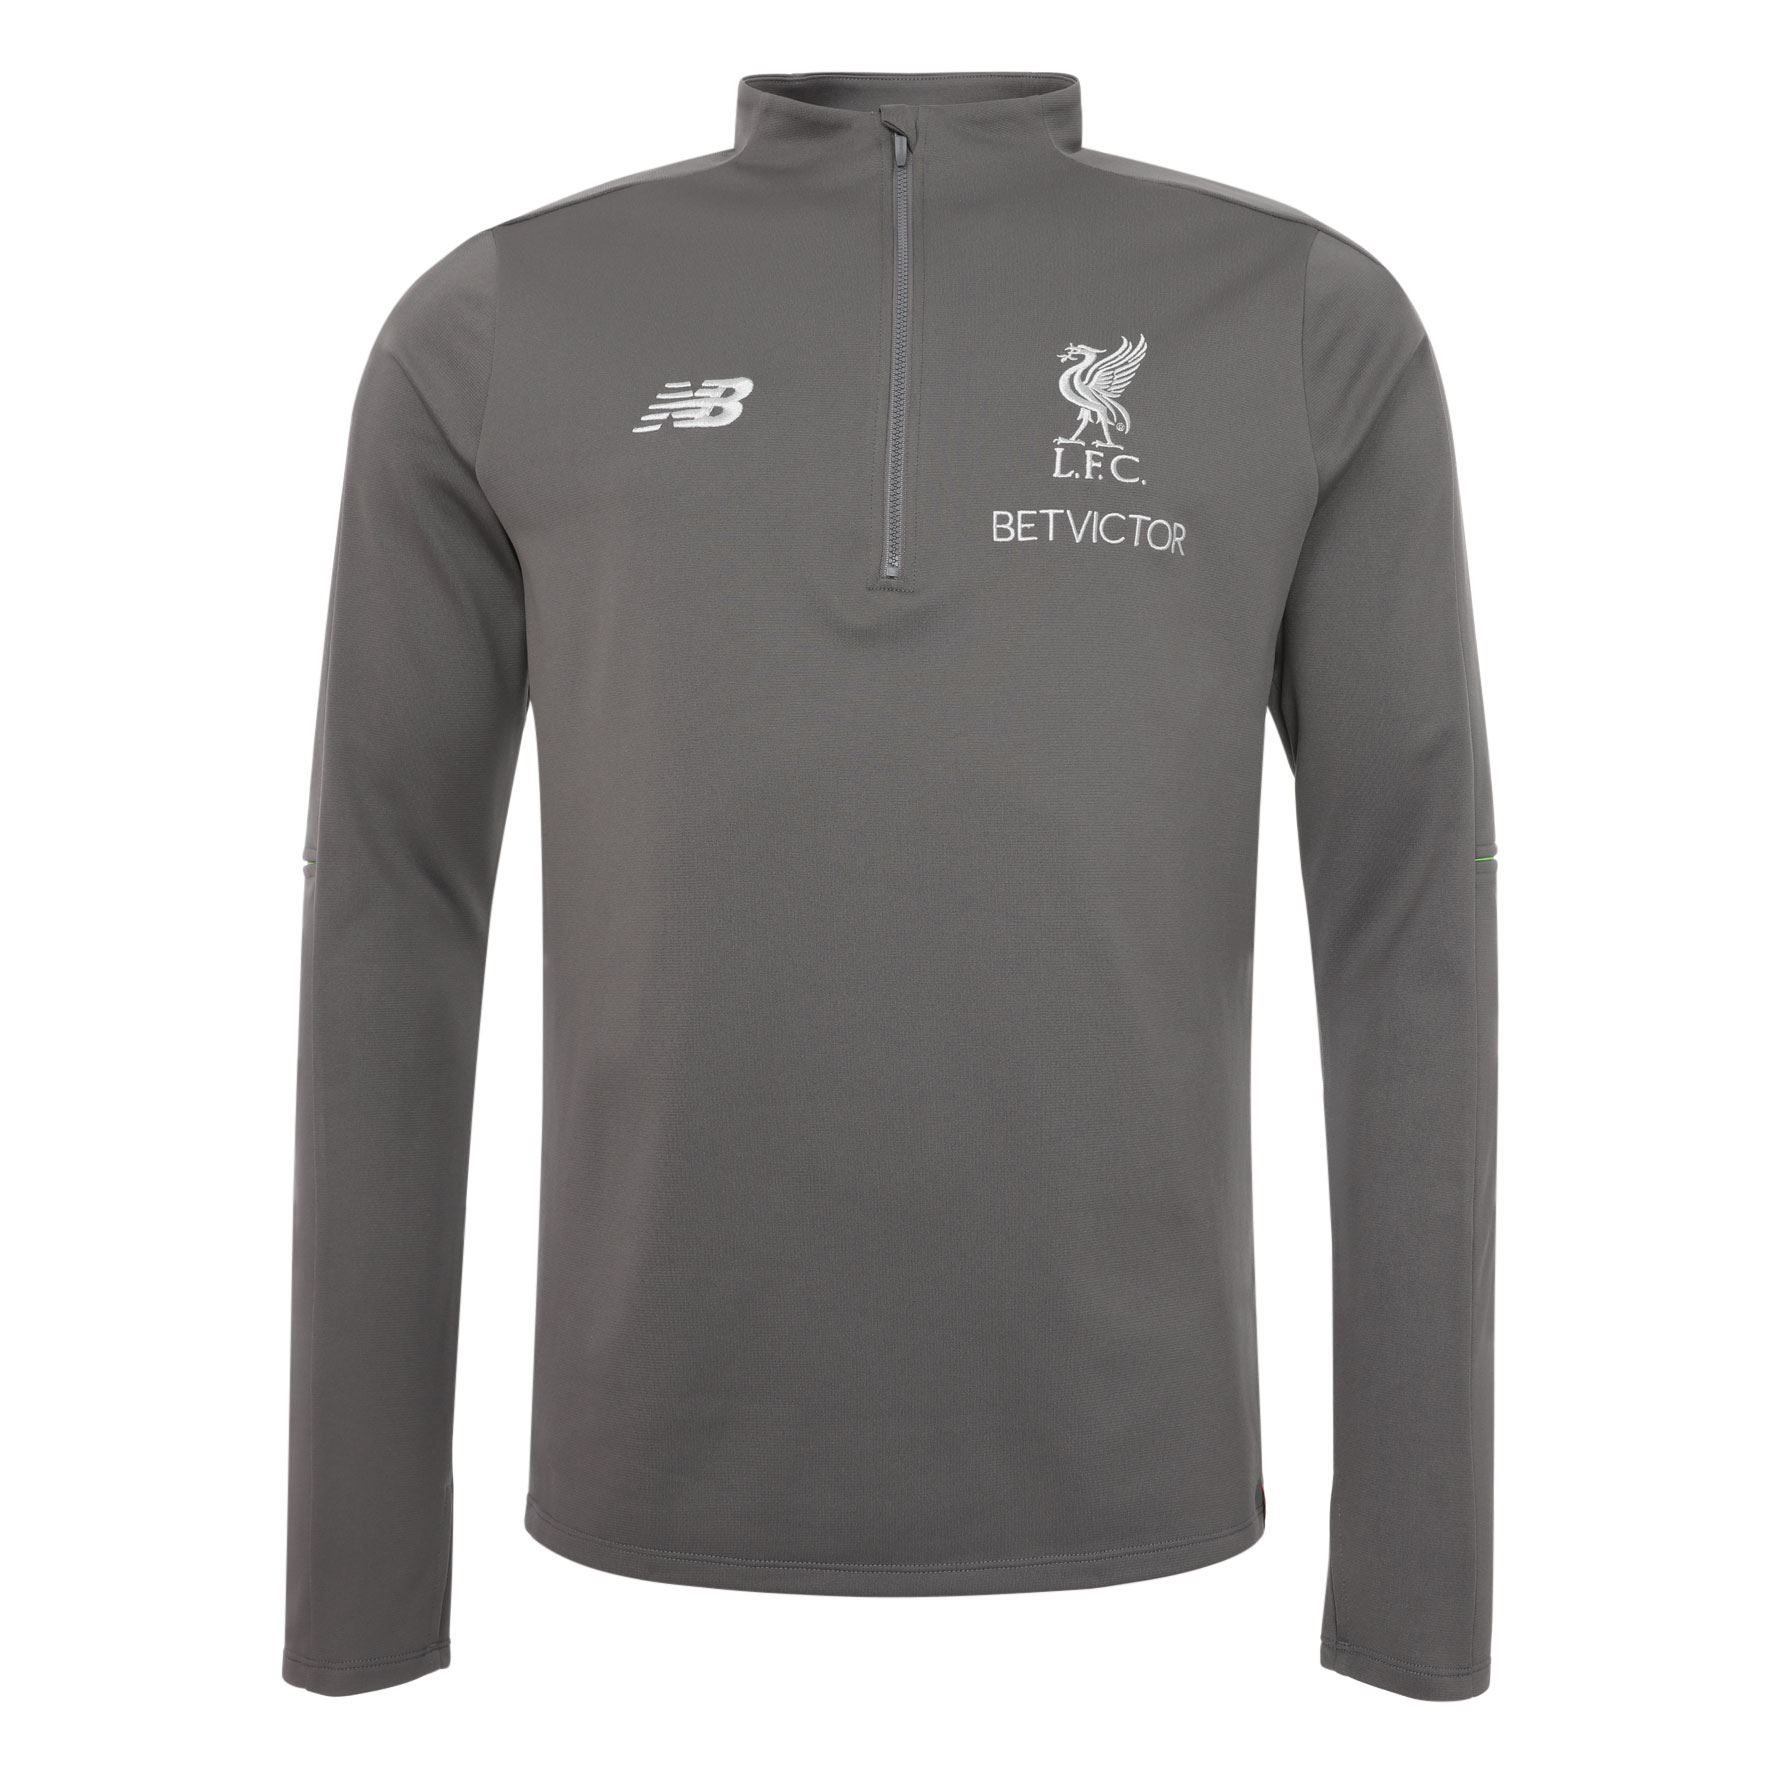 f9e20cccc4b Liverpool FC Grey Mens Soccer Sweater Training Hybrid 18 19 LFC Official  Store